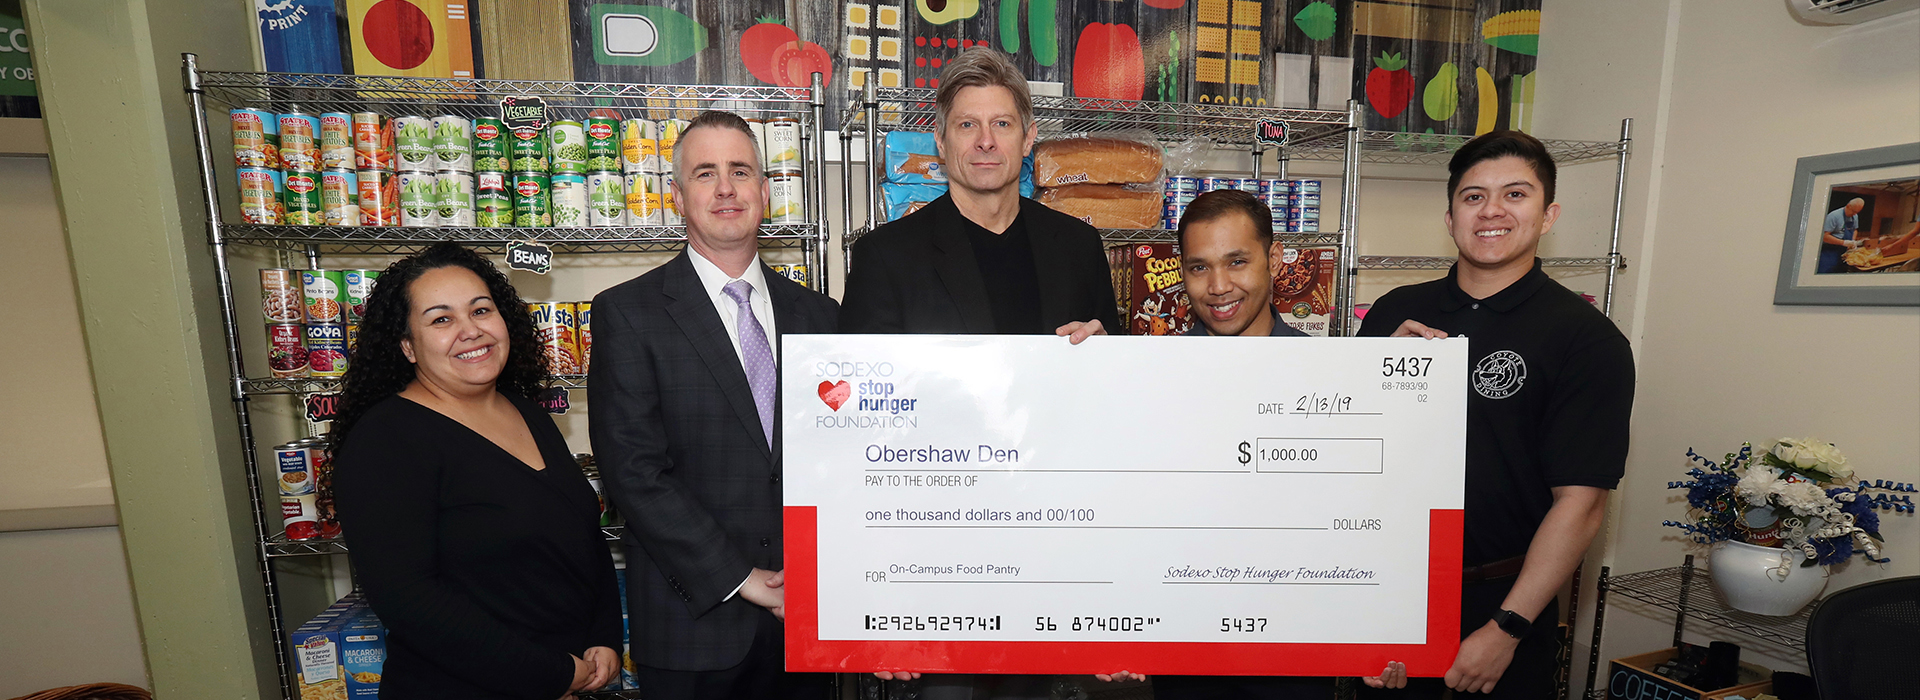 Obershaw DEN receives $1,000 donation